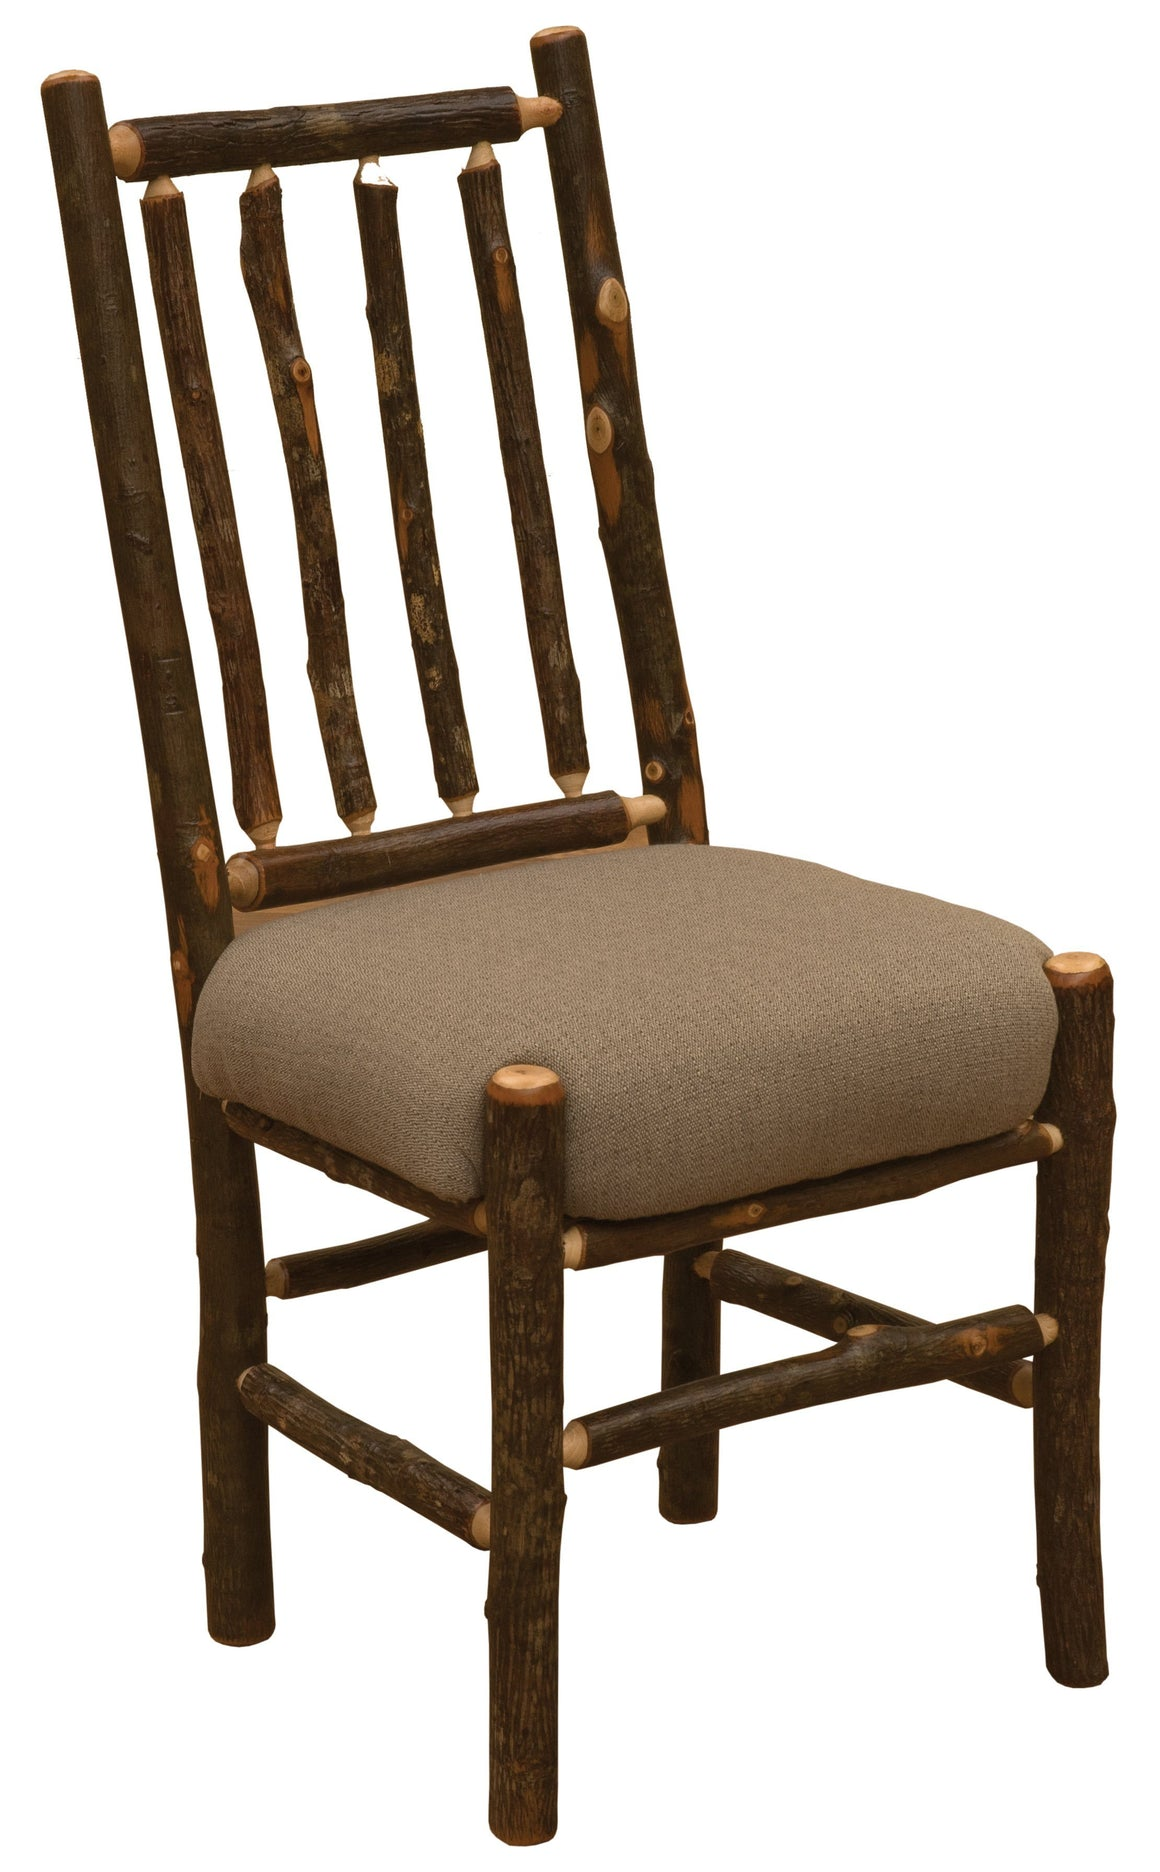 Natural Hickory Bistro Spoke Back Side Chair - Upholstered Seat - Standard Finish Chair Fireside Lodge Customer's Own Material